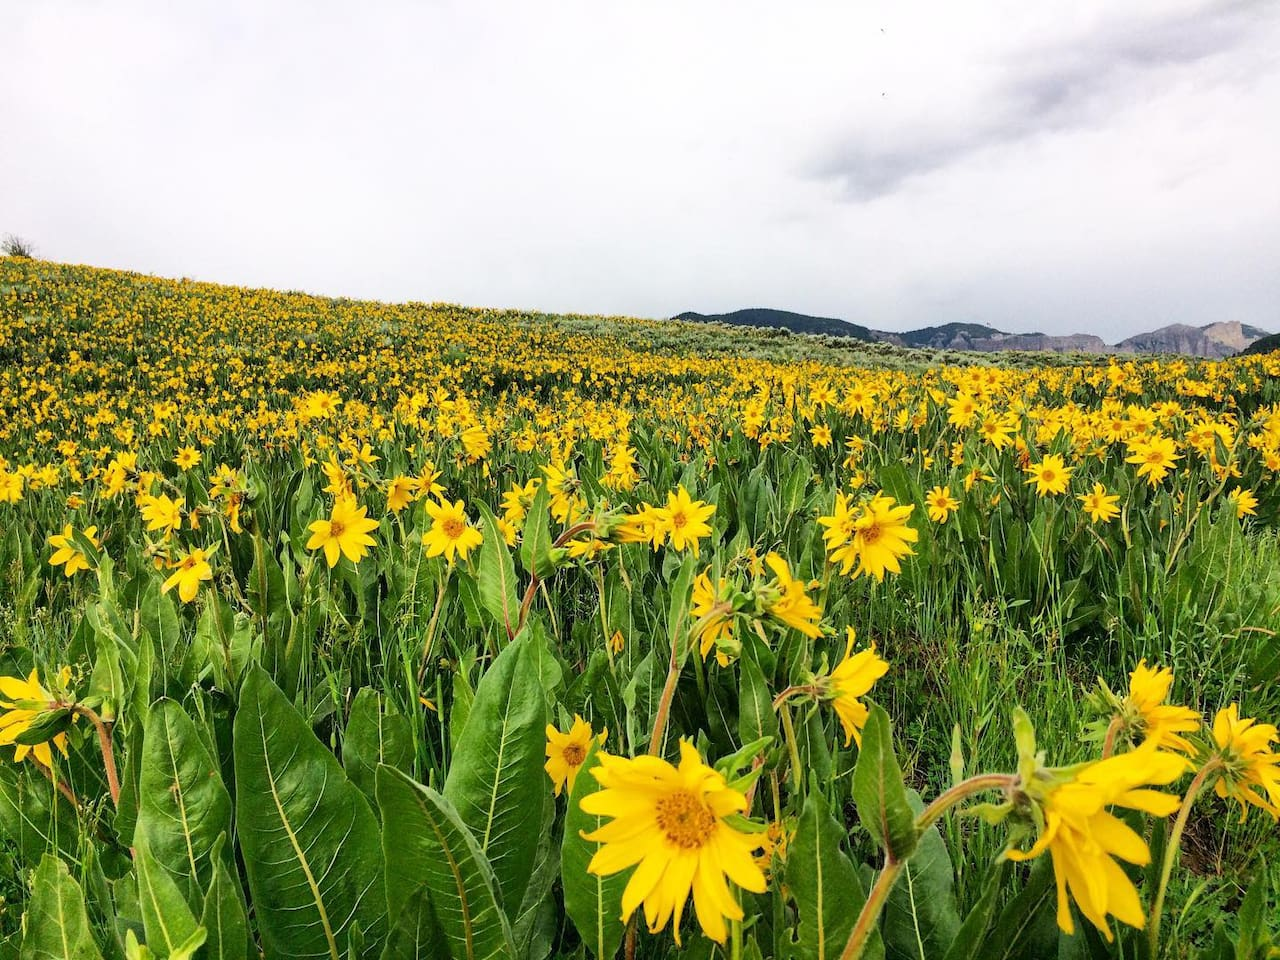 Come see the 2019 Gunnison Valley Super Bloom